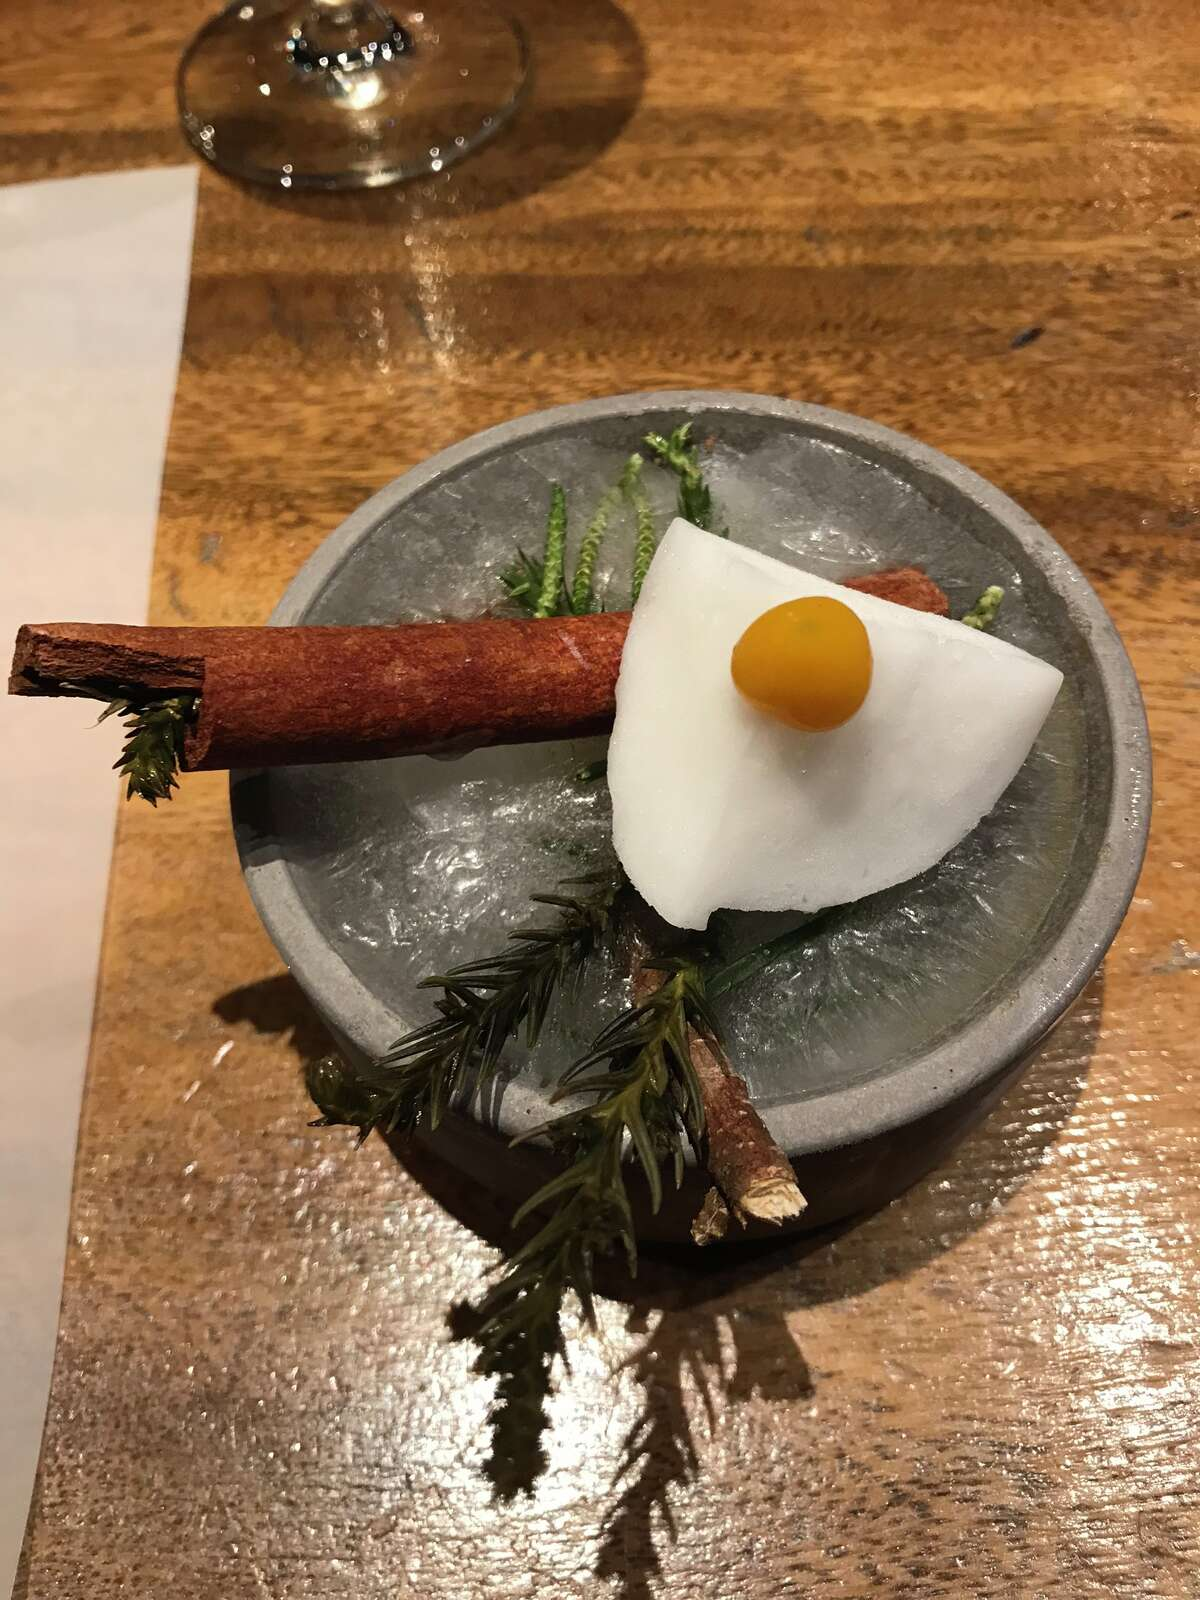 First up on the emoji list was the peach, but what landed in front of diners was a winter forest - branches and leaves jut out of a bowl of solid ice - and a frozen bite of food that was intensely white peach-flavored and melted as you chewed through it.